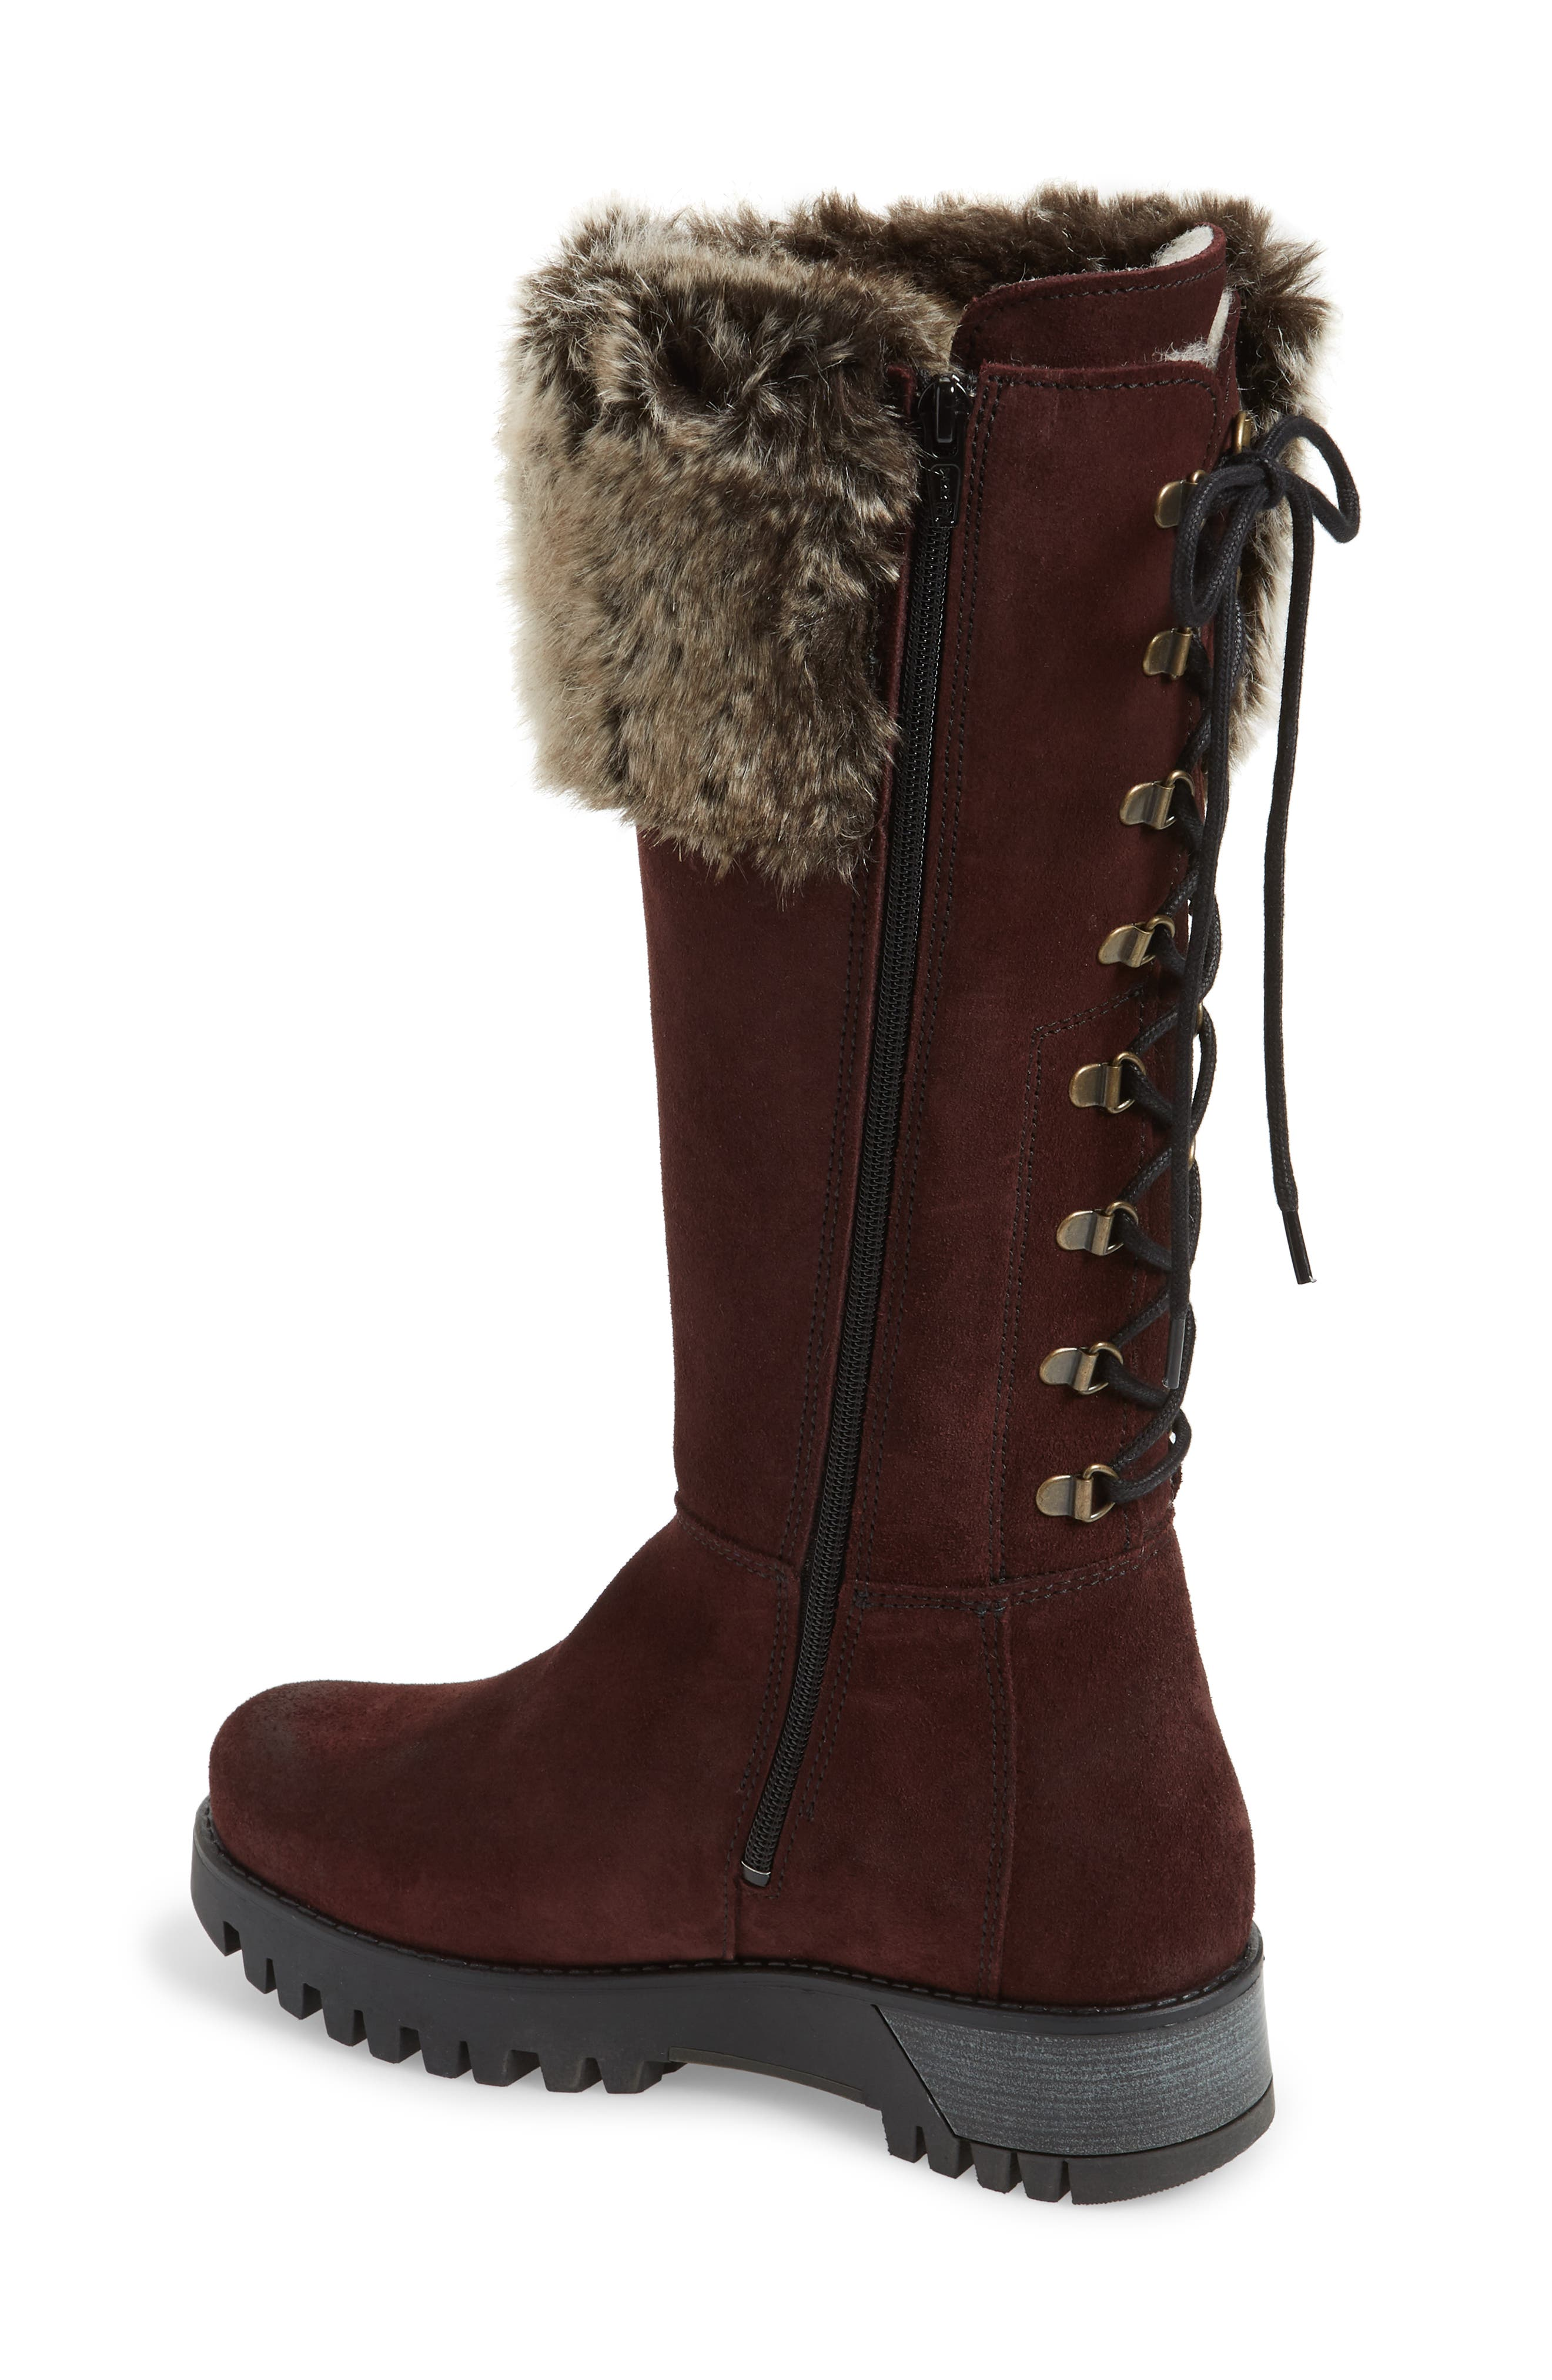 Graham Waterproof Winter Boot with Faux Fur Cuff,                             Alternate thumbnail 2, color,                             Wine Suede